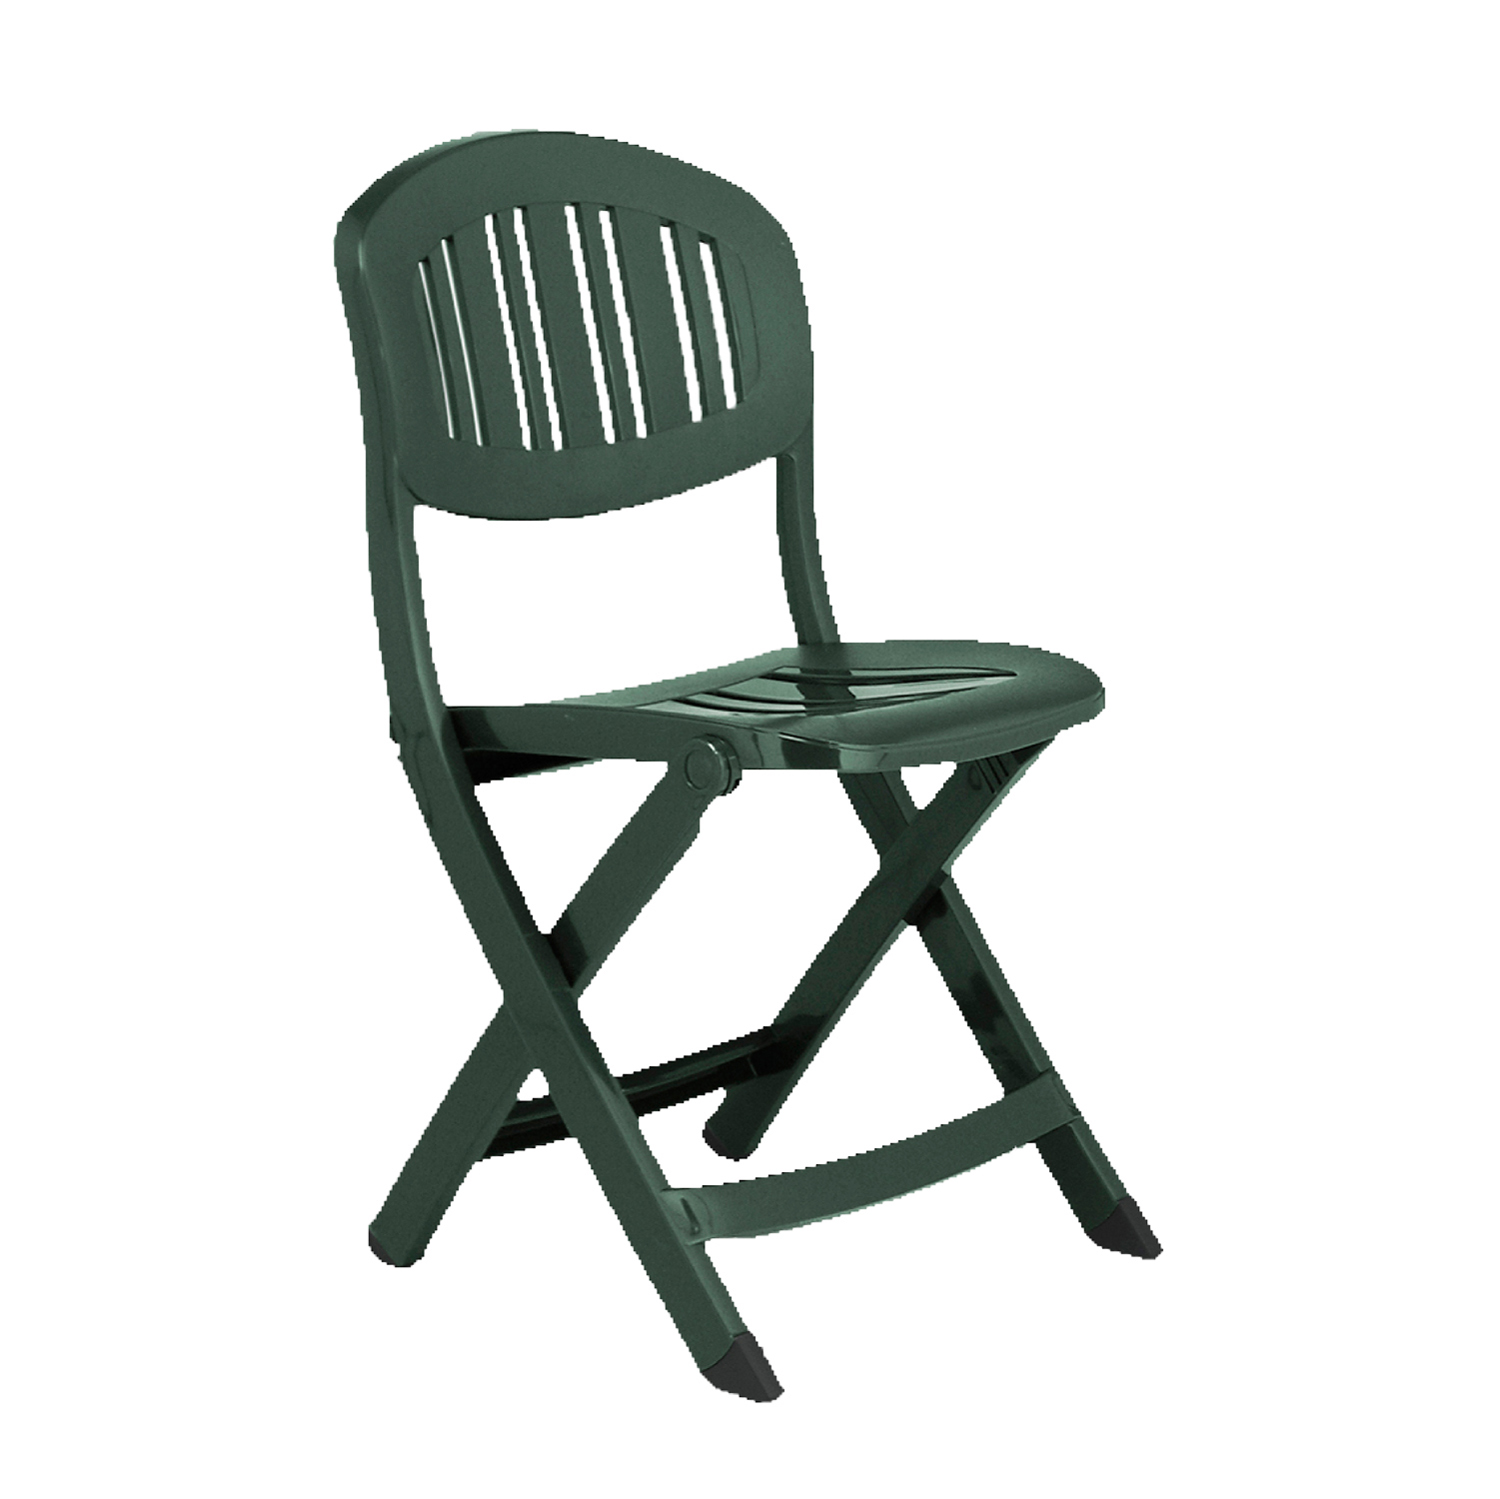 capri folding chair green srp 42 95 37 95 a lightweight folding chair